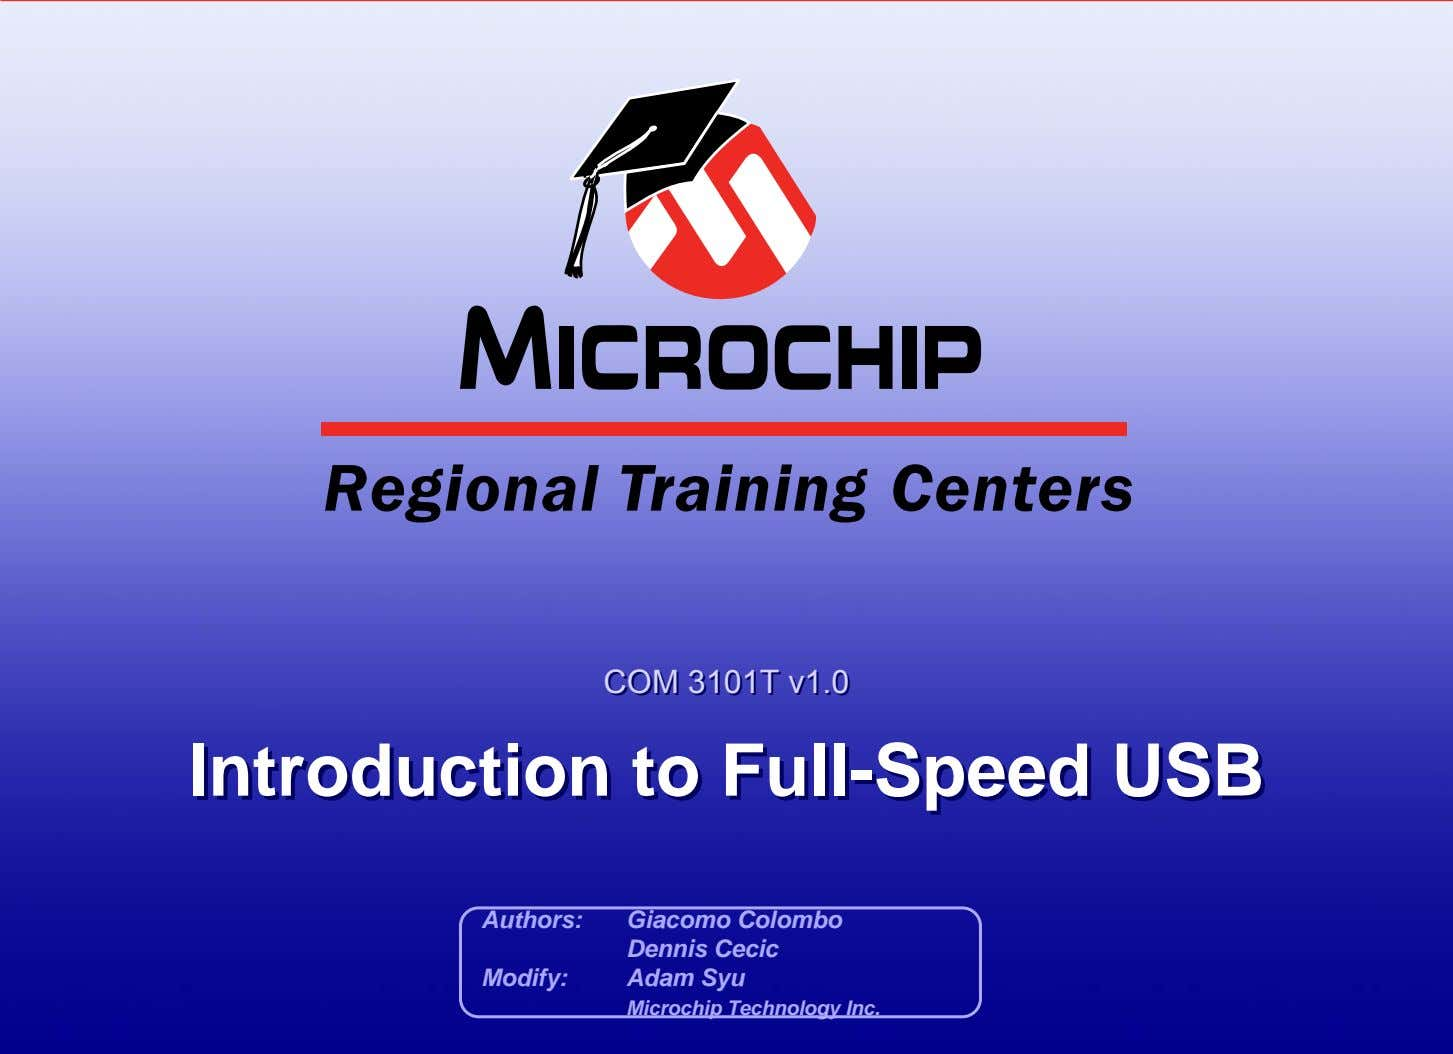 COMCOM 3101T3101T v1.0v1.0 IntroductionIntroduction toto Full-SpeedFull-Speed USBUSB Authors: Modify: Giacomo Colombo